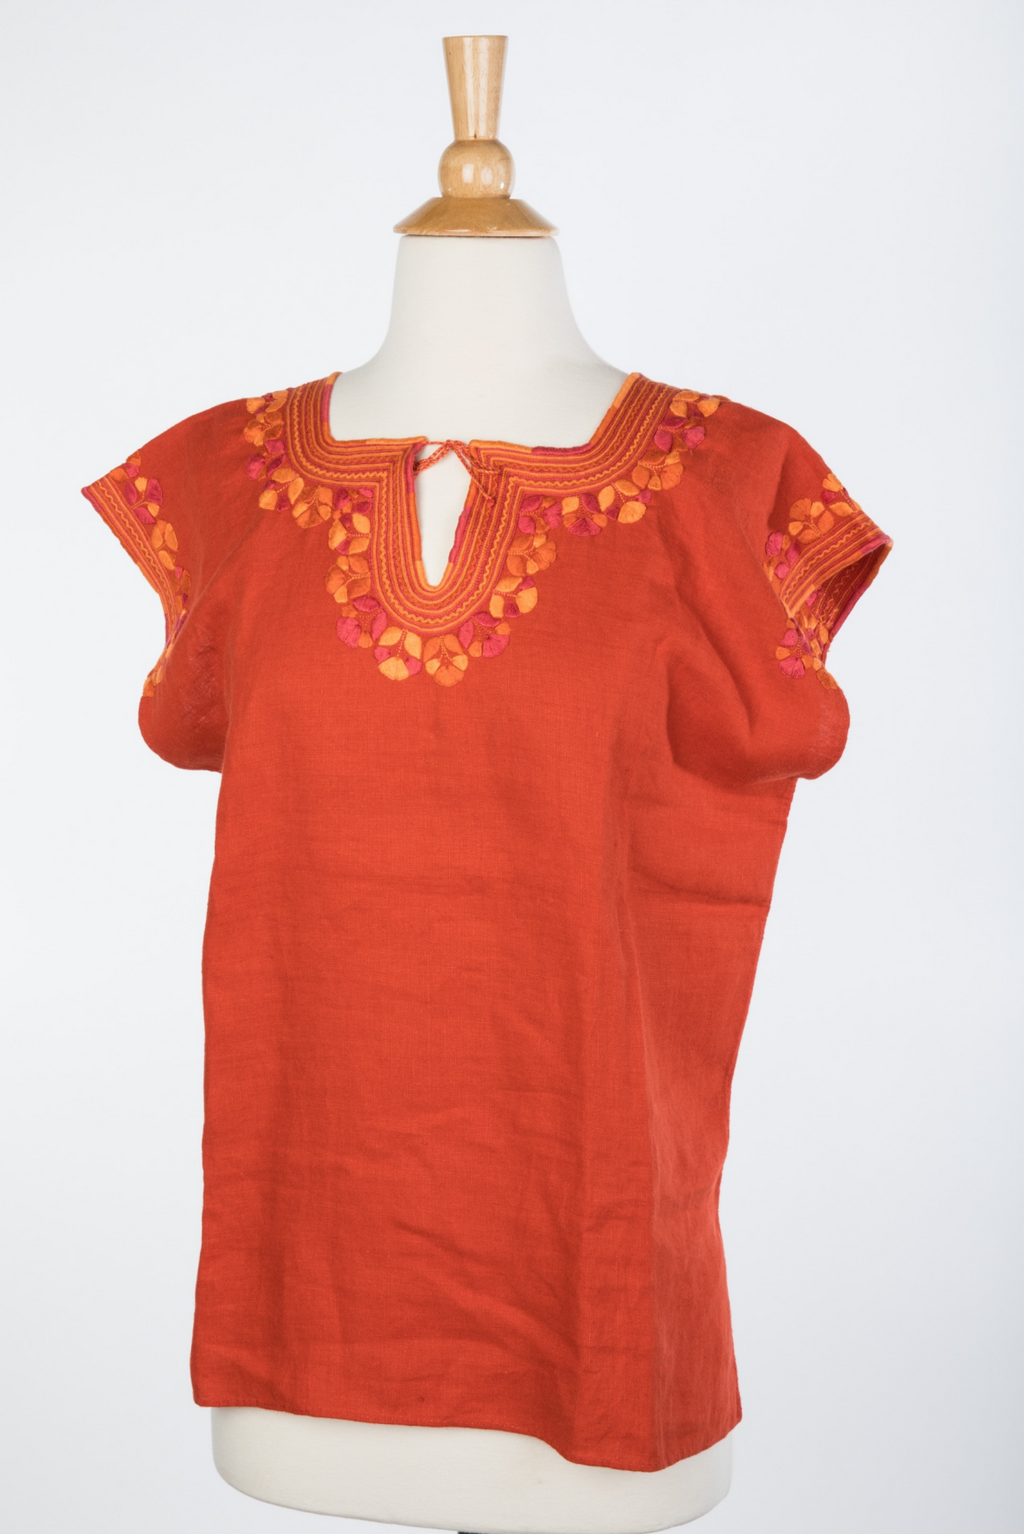 Kahlo Mexican Linen Blouse - Tomato Red